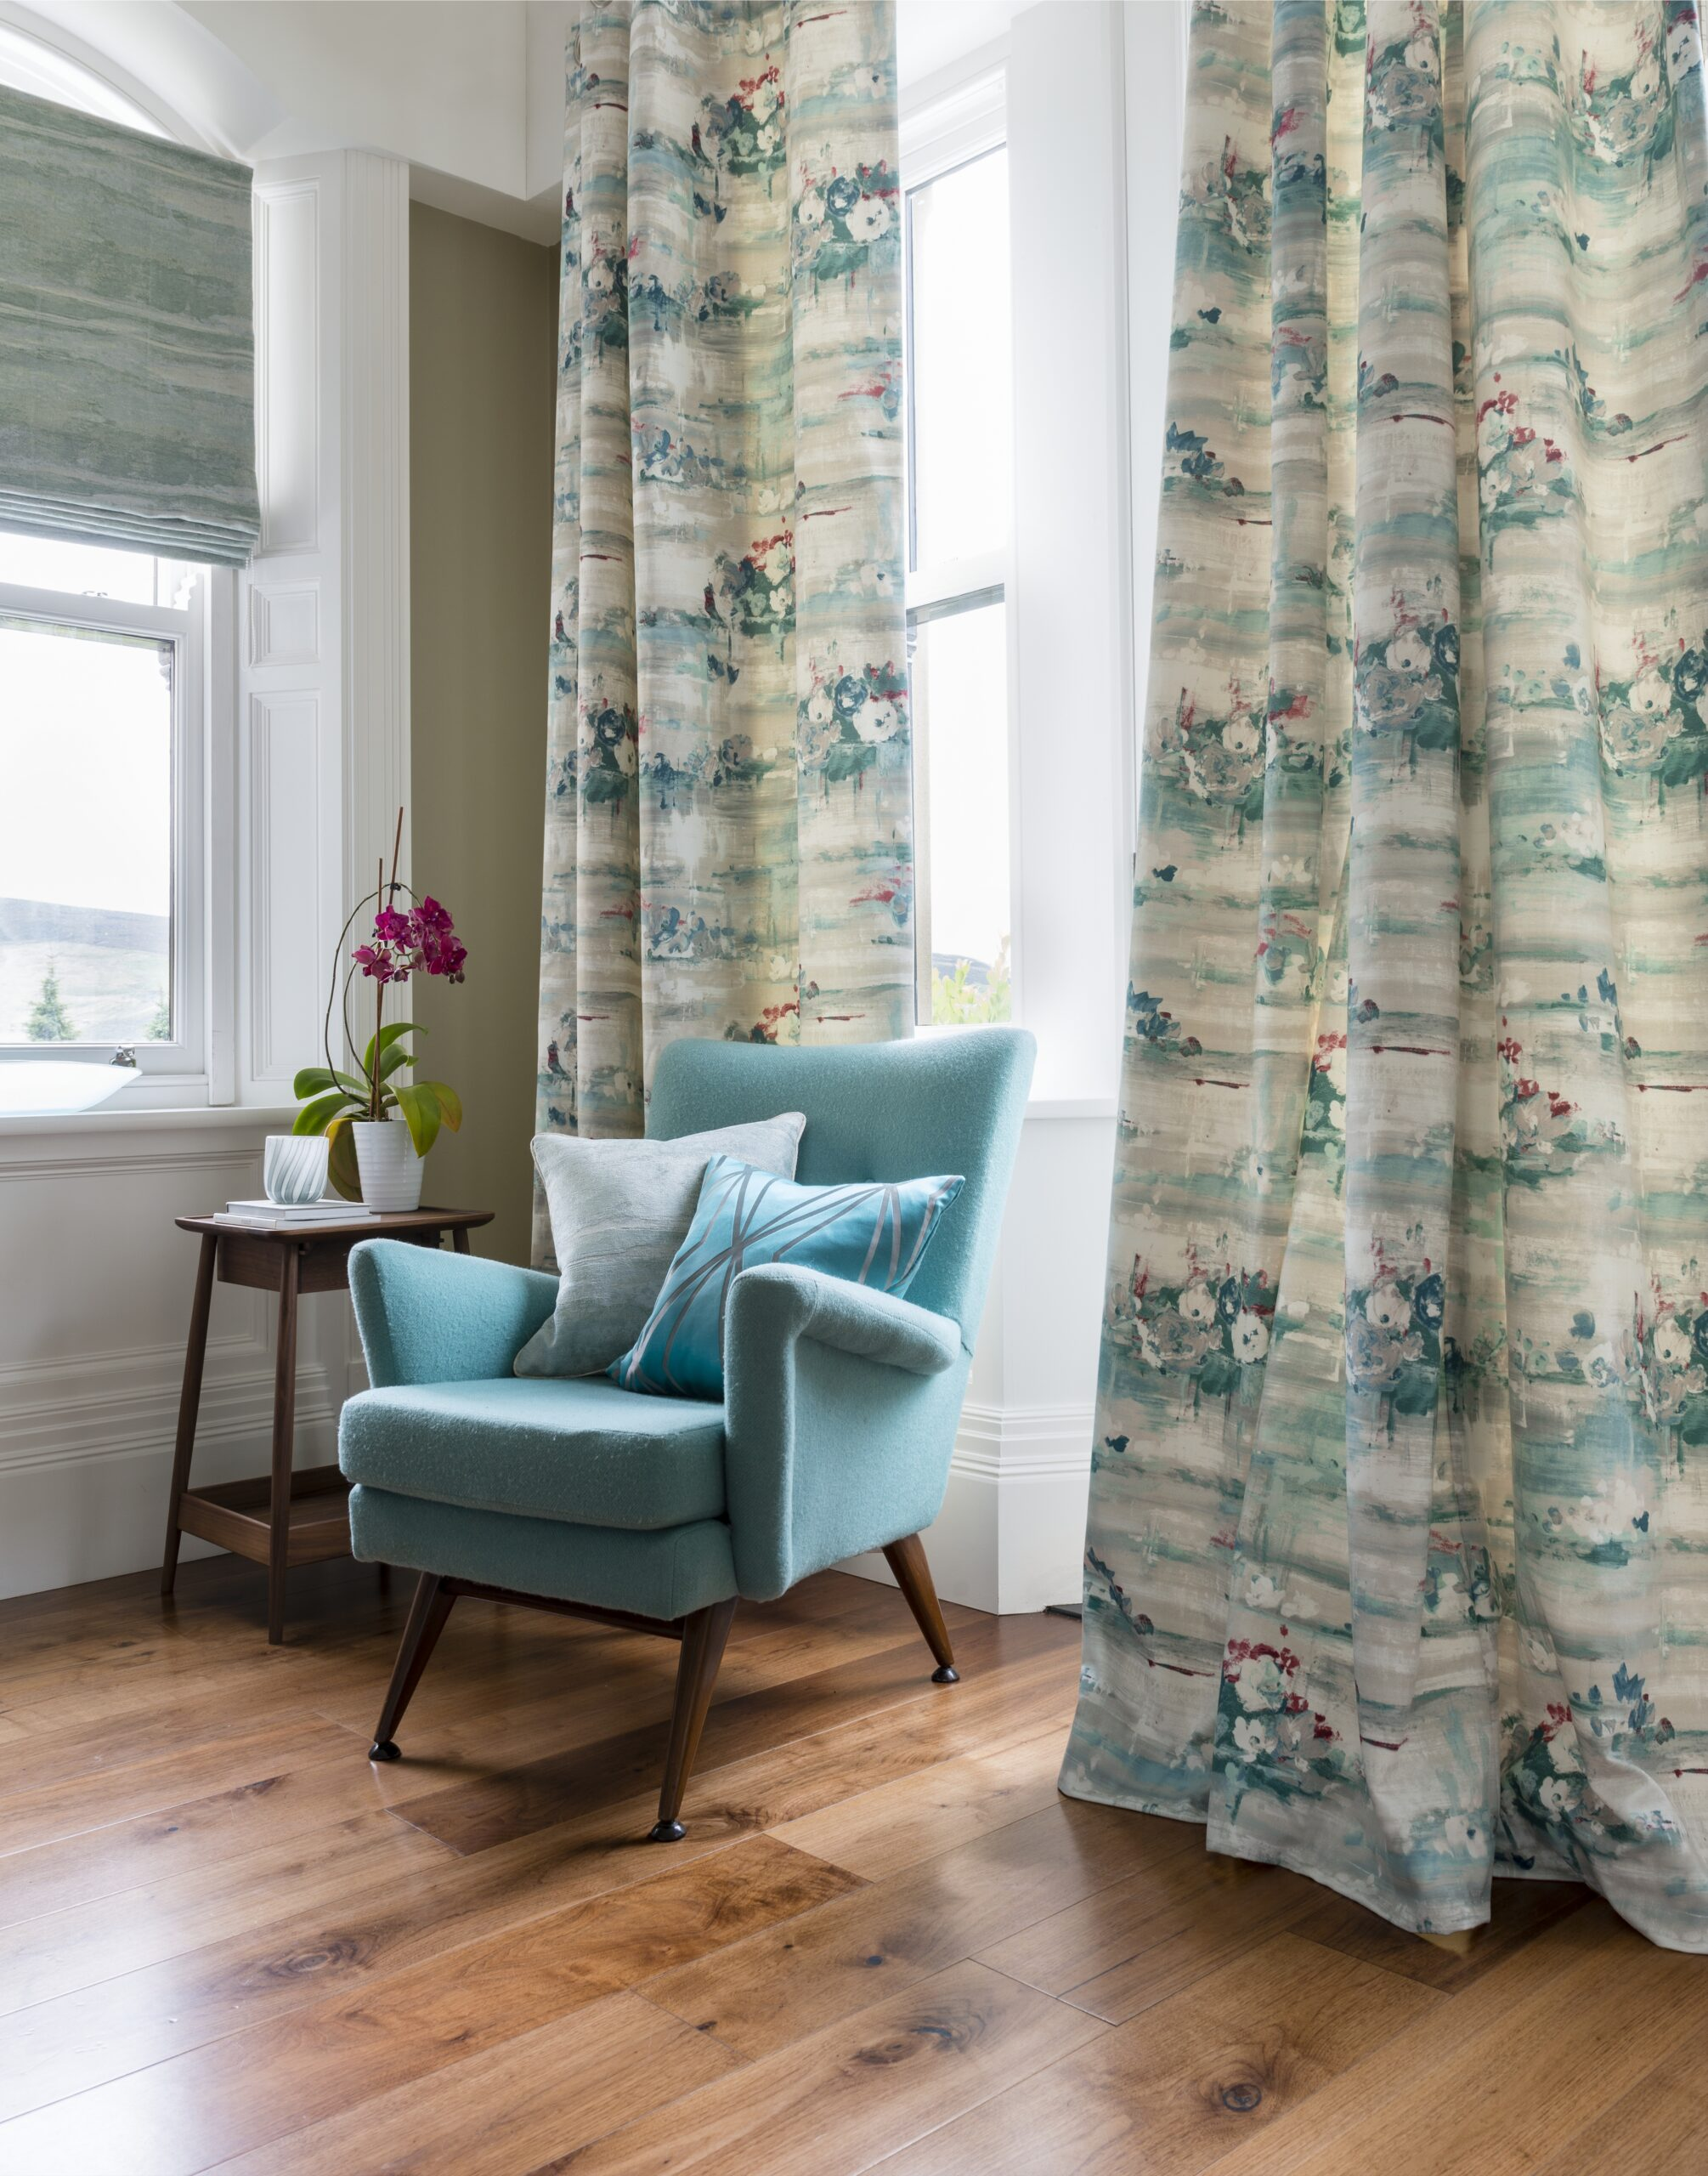 Nice teal chair next to windows covered with beautiful curtains